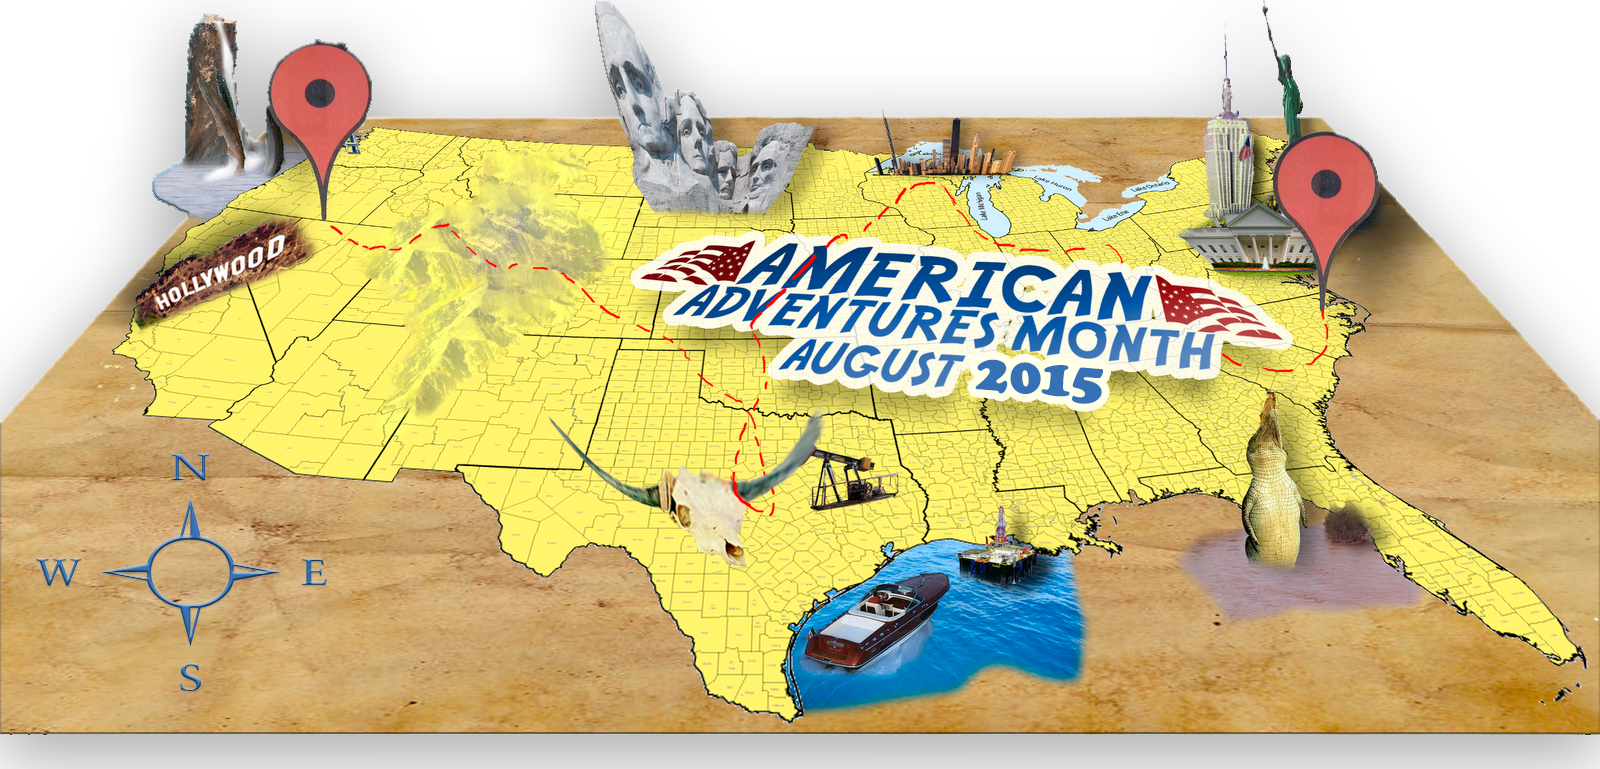 American Adventures Month Aug 2015 pic